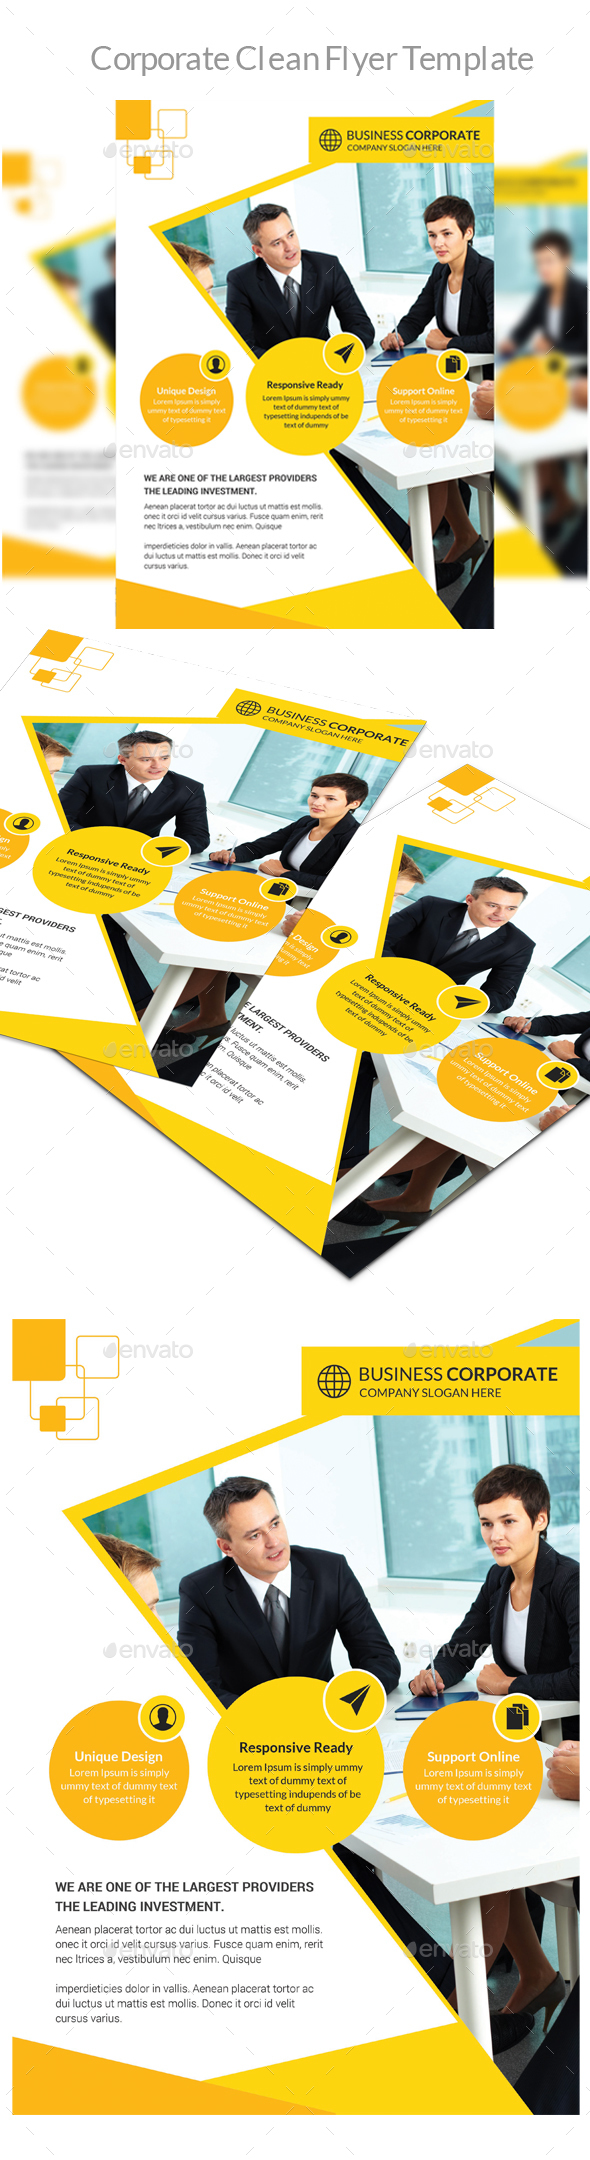 Corporate Clean Flyer - Corporate Flyers